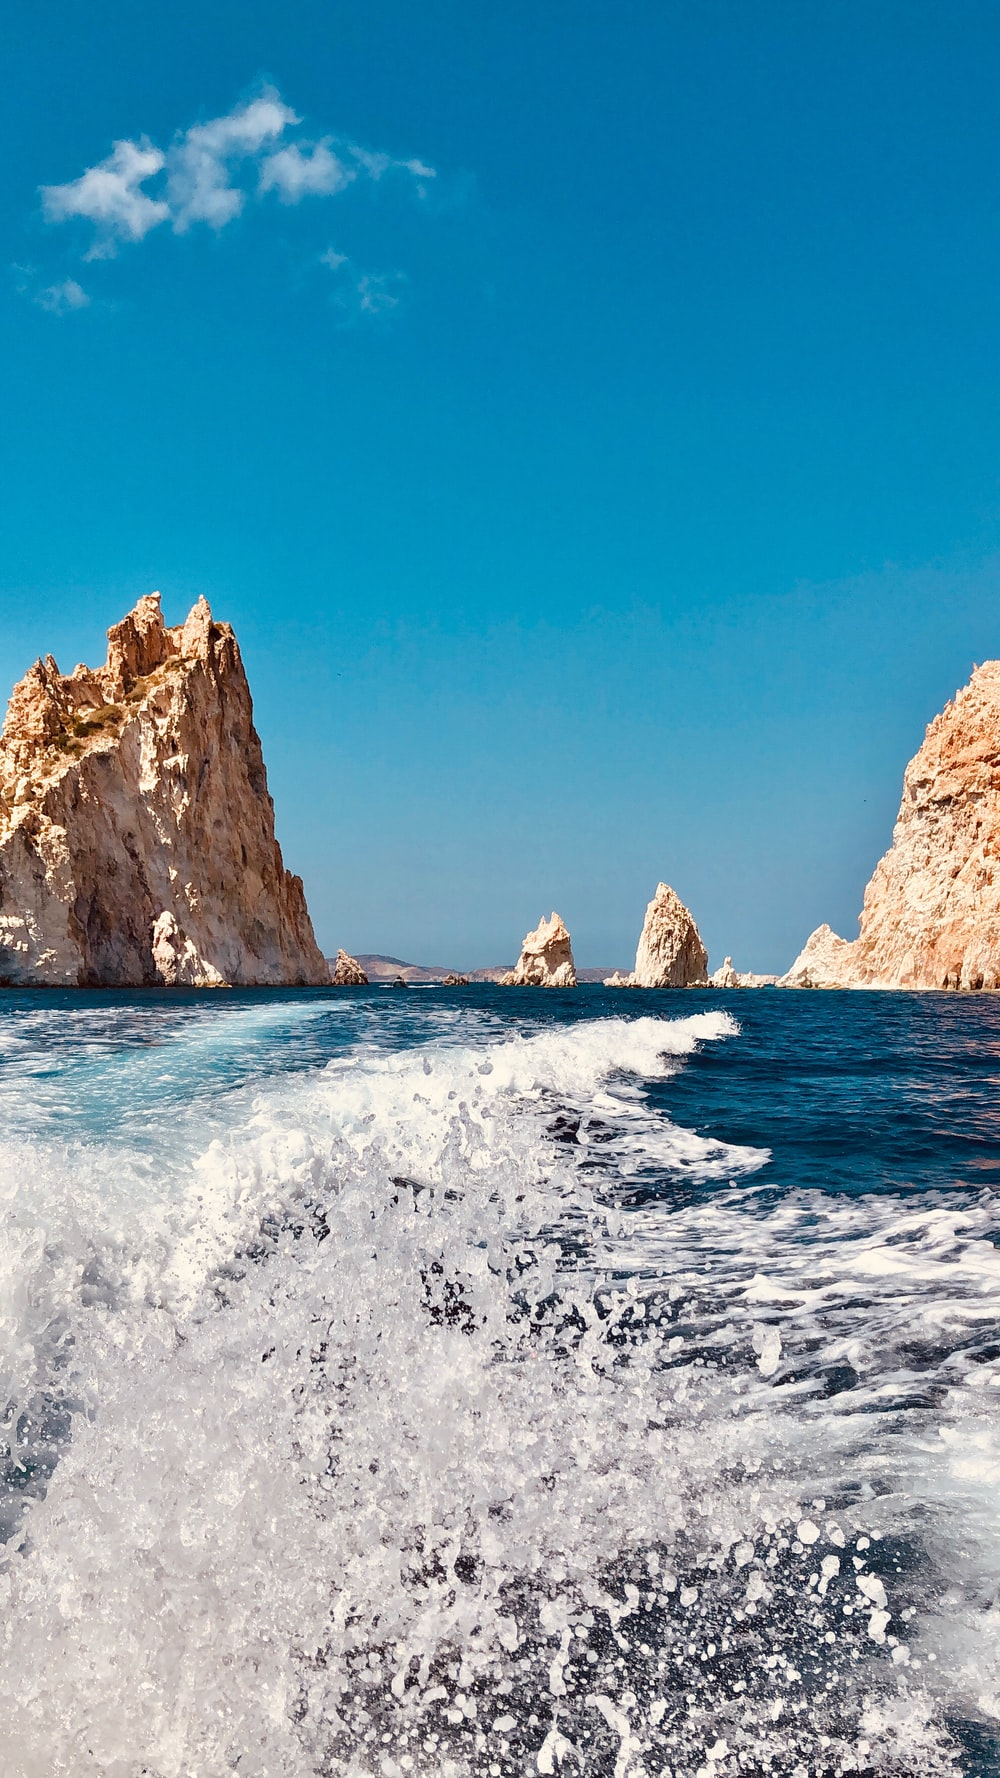 brown rock formation on sea under blue sky during daytime